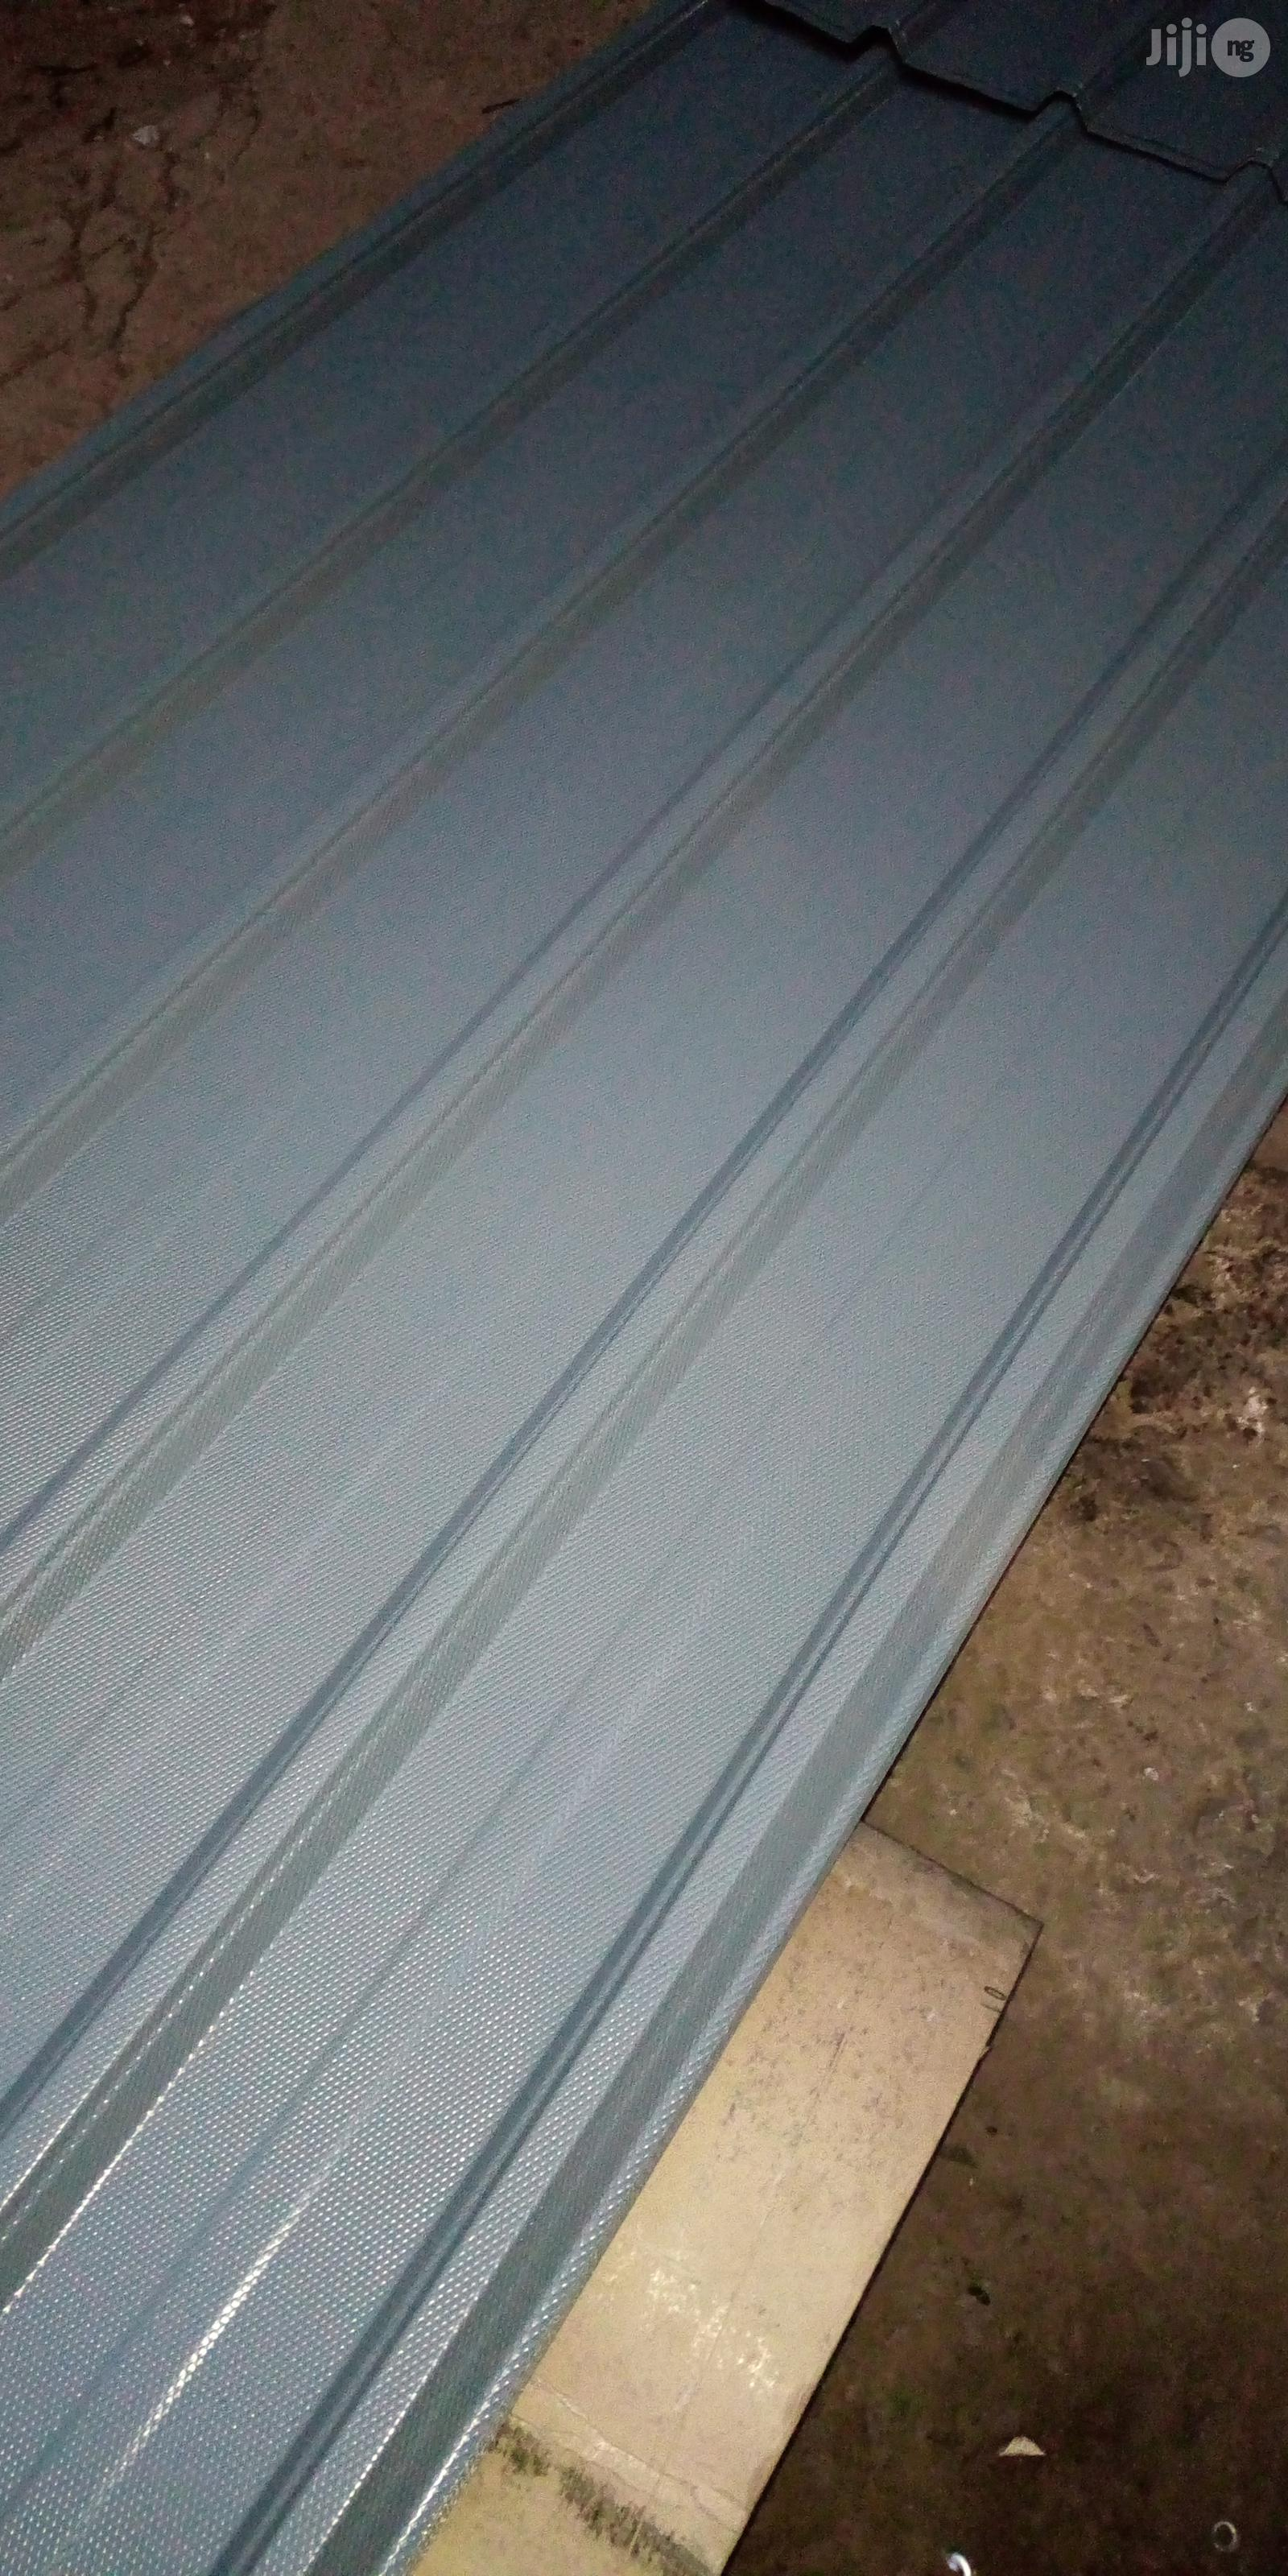 Long Span Aluminum Roofing Coil Materials 002   Building Materials for sale in Agege, Lagos State, Nigeria